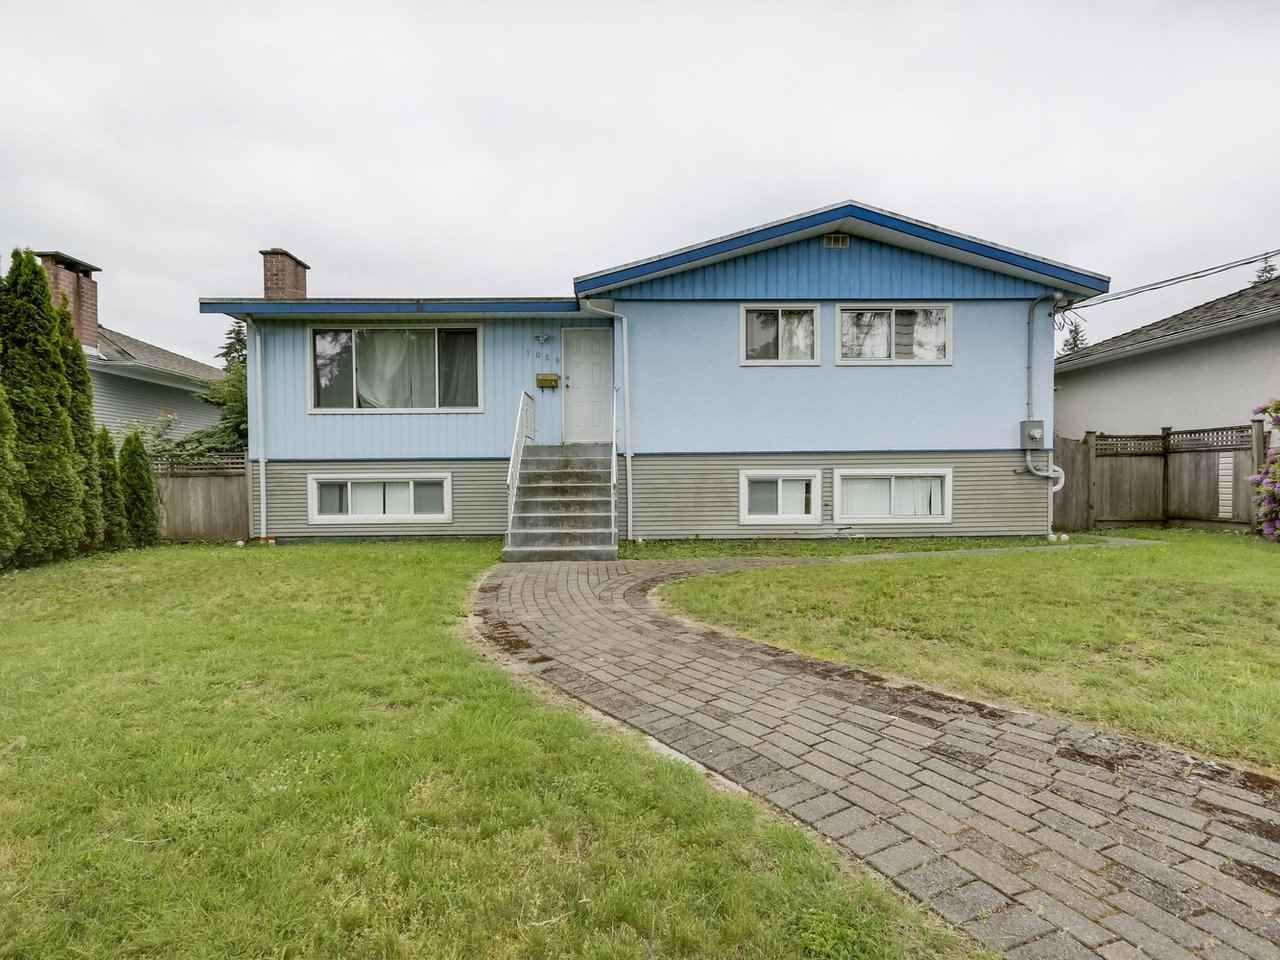 Main Photo: 1058 SMITH Avenue in Coquitlam: Central Coquitlam House for sale : MLS®# R2269933